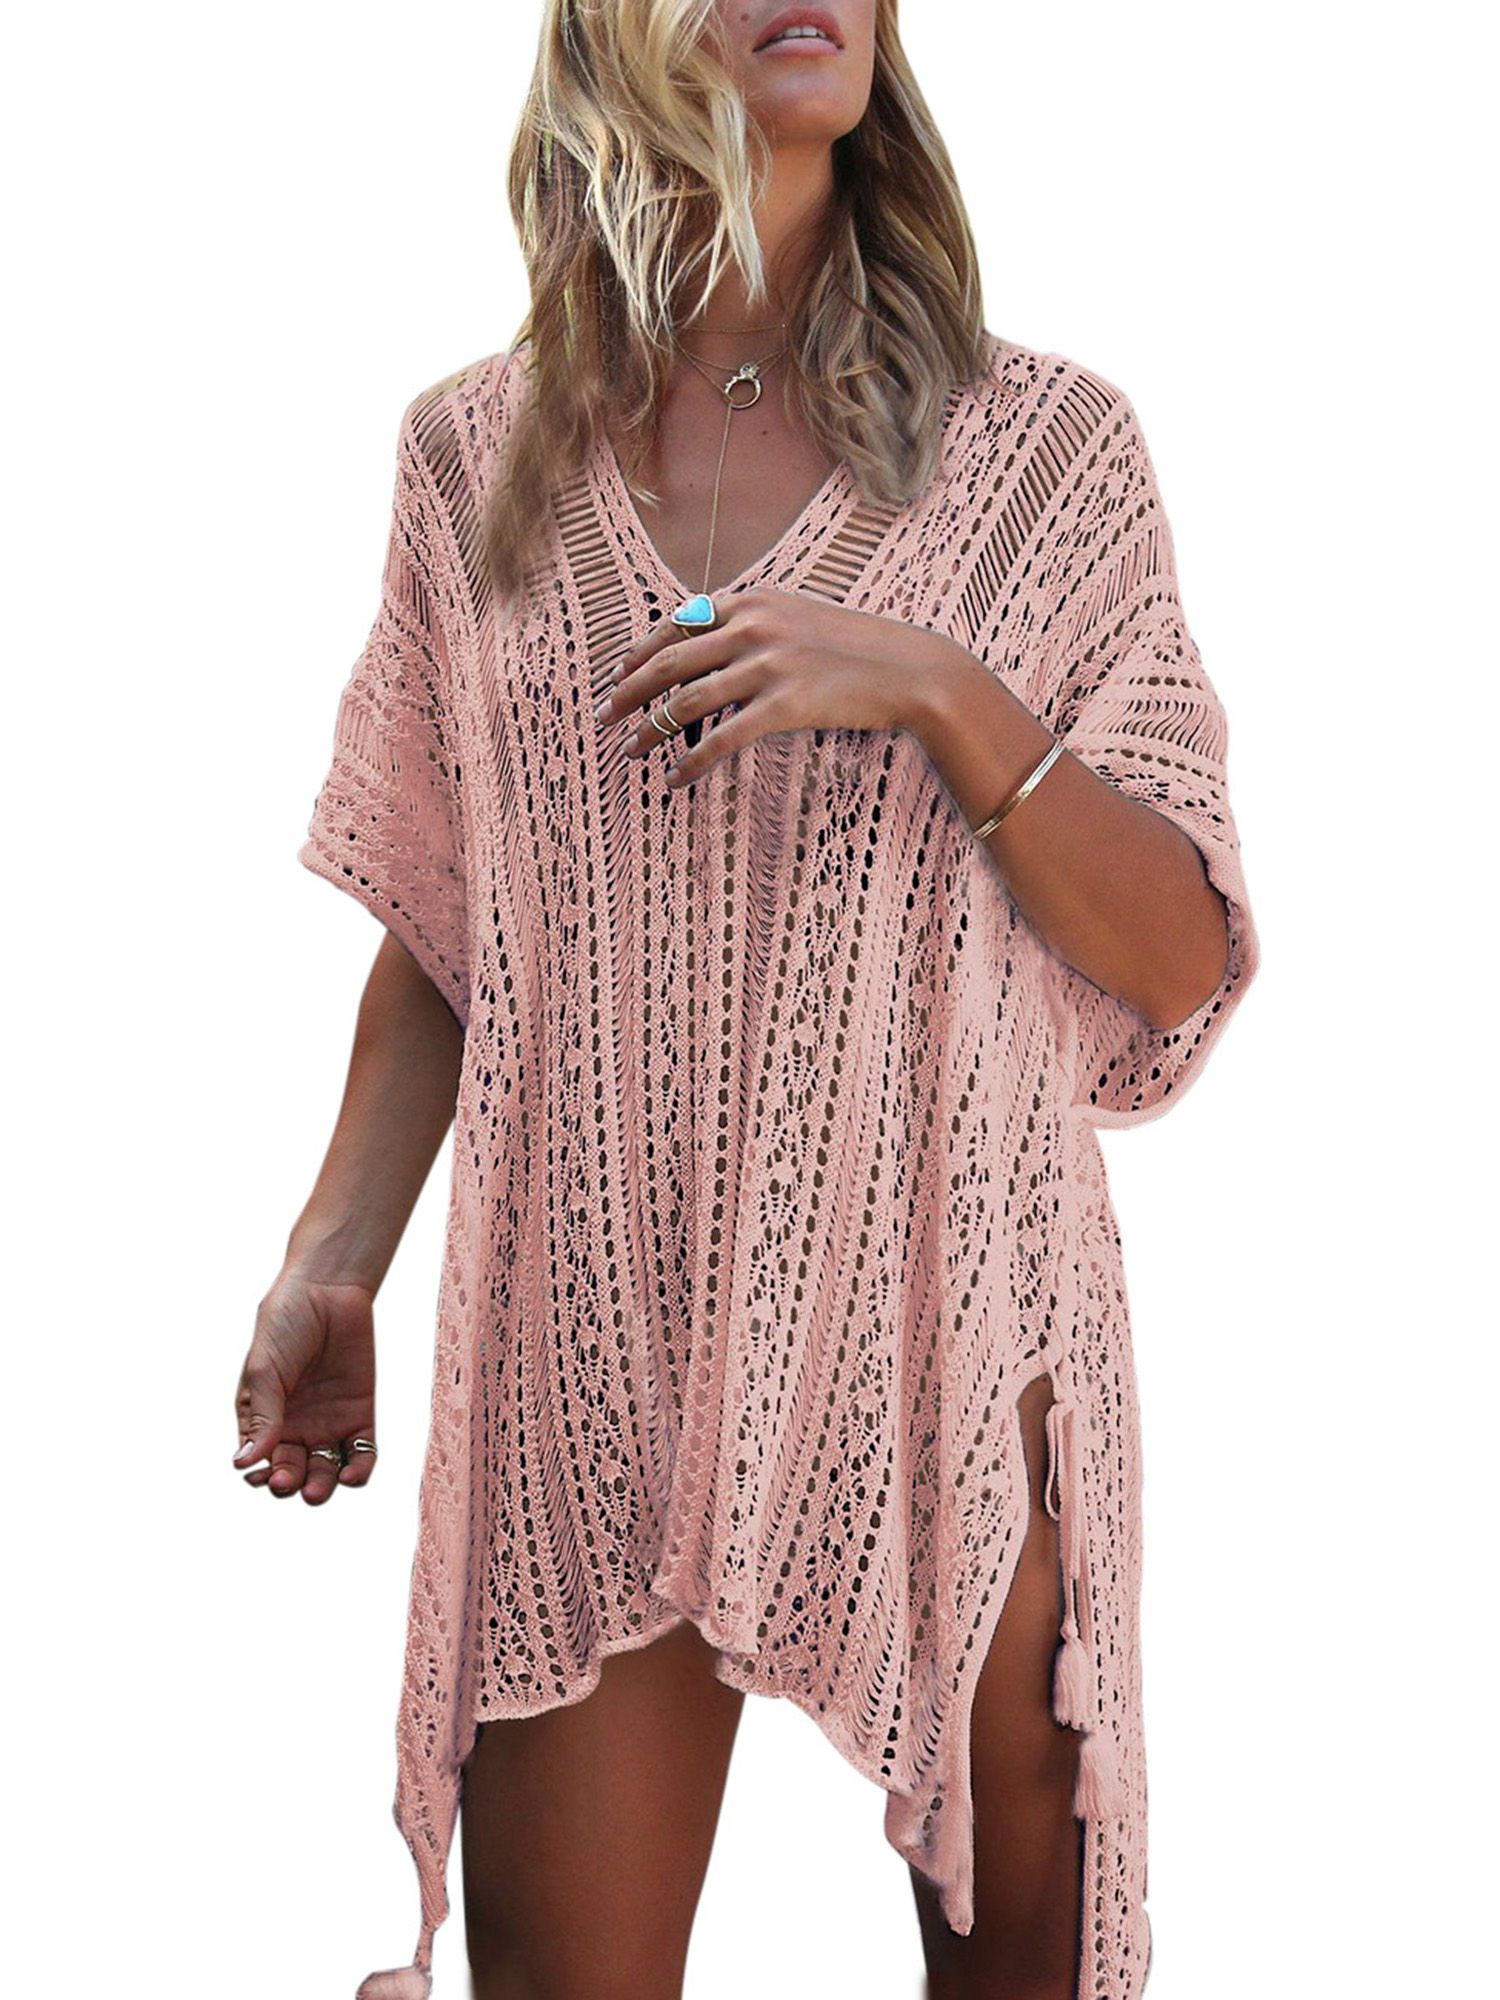 12941cbc86f Women Hollow Out Beach Swimsuit Cover ups Tassel V Neck Loose Knitted Bikini  Bathing Suit Summer Swimwear Crochet Dress#ups, #Cover, #Neck